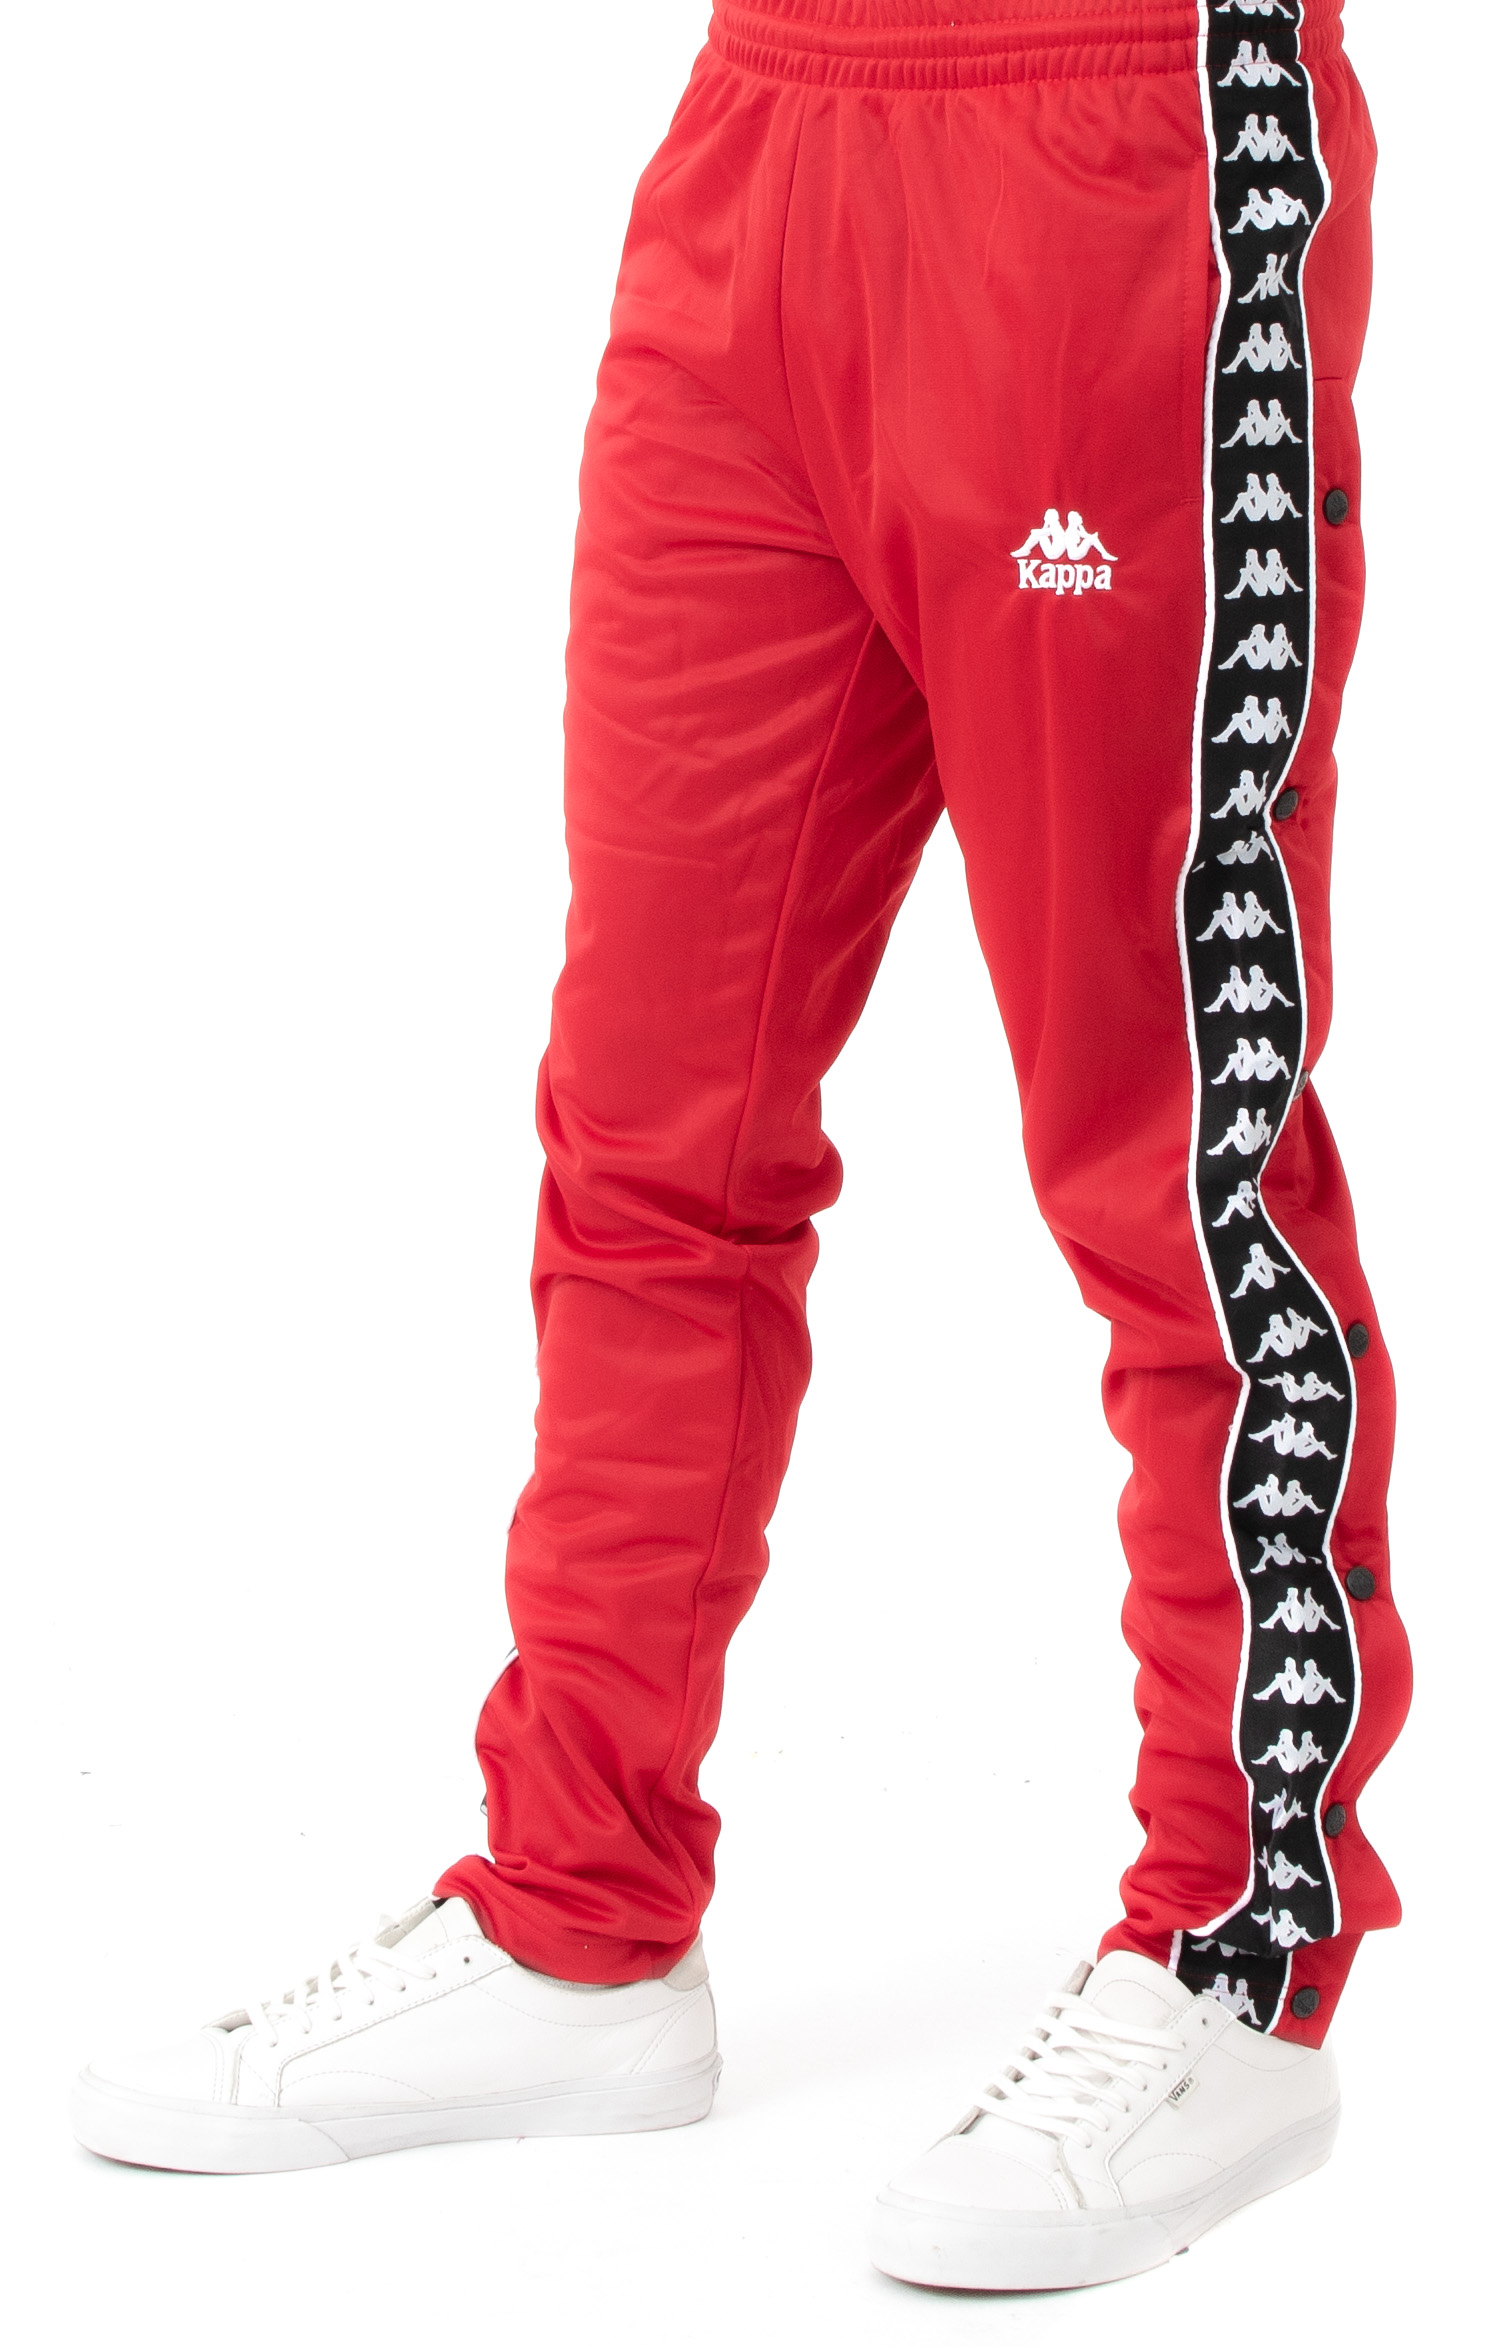 4d49a14a284c Thumbnail 1 Thumbnail 1 Thumbnail 1. Authentic Hector Slim Fit Track Pant -  Red/Black/White